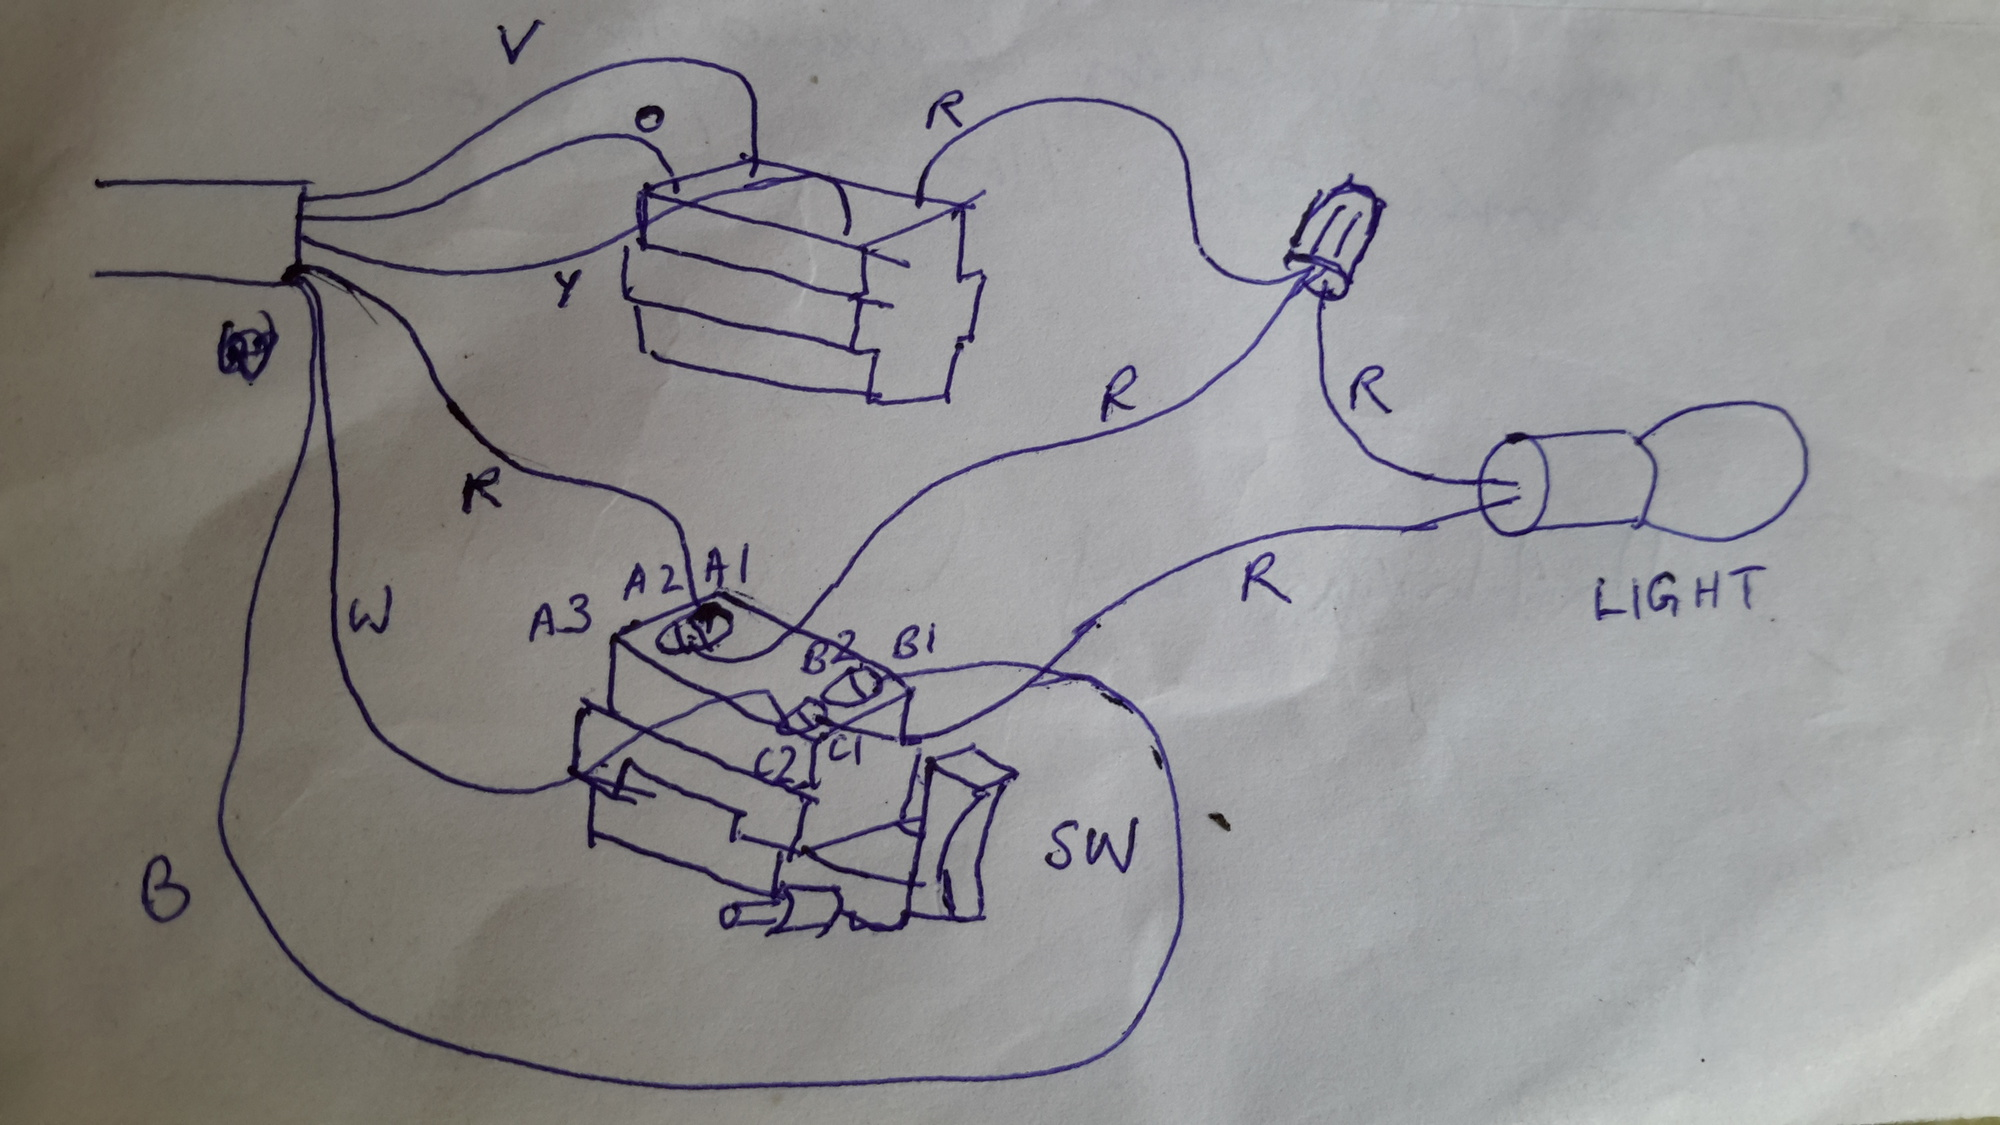 Wiring Diagram For Craftsman Router Not Lossing Radial Arm Saw Free Picture Switch Forums Rh Routerforums Com Plunge Parts Air Compressor